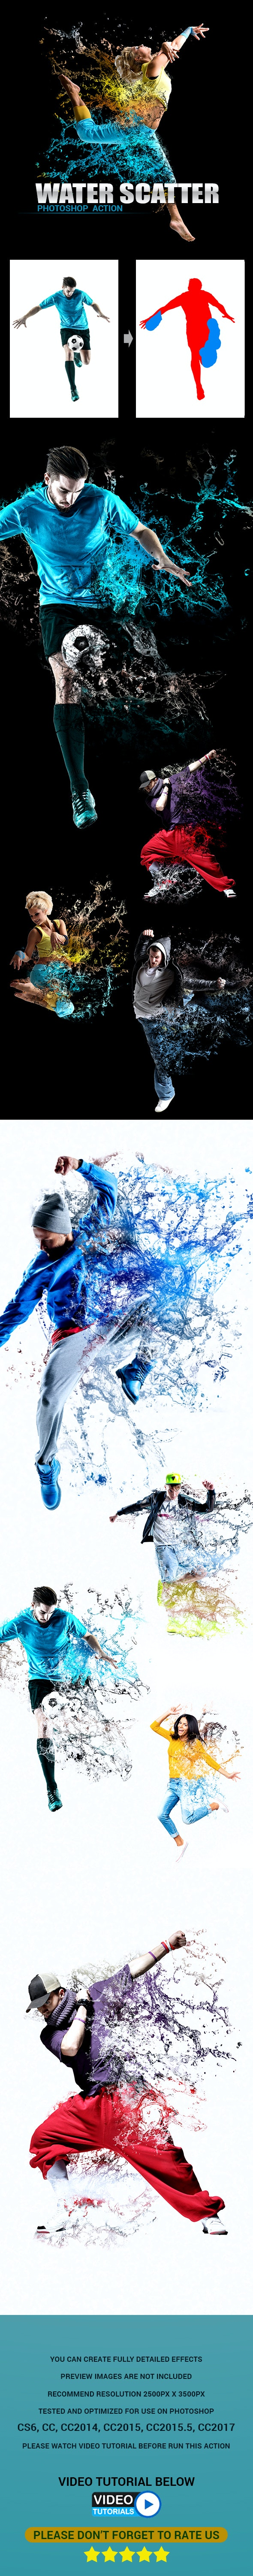 Water Scatter Photoshop Action - Photo Effects Actions